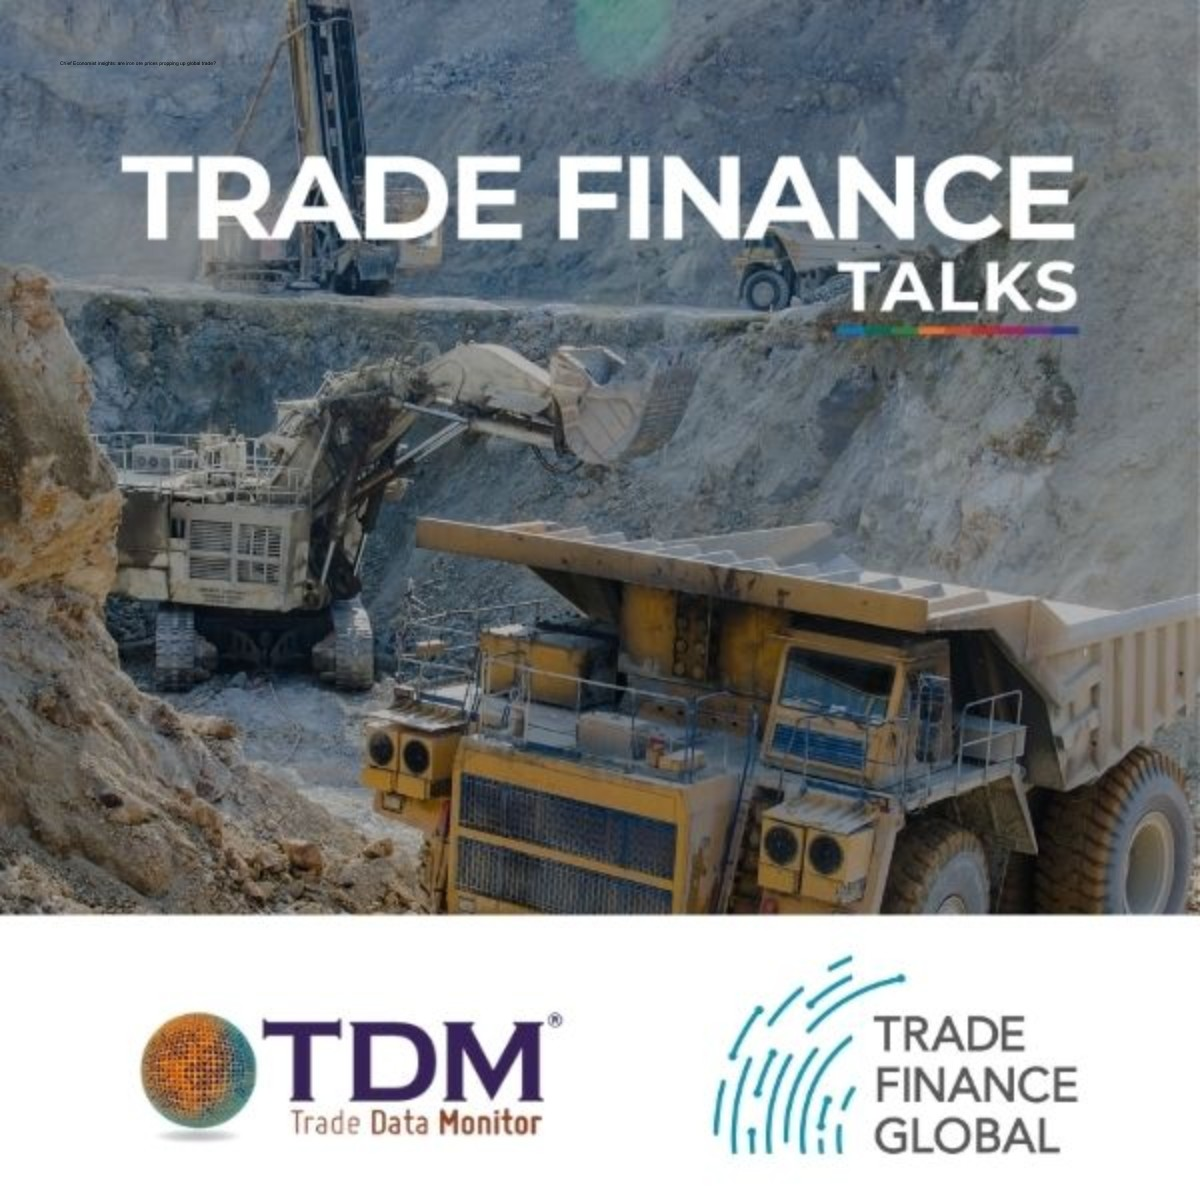 Chief Economist insights: are iron ore prices propping up global trade?